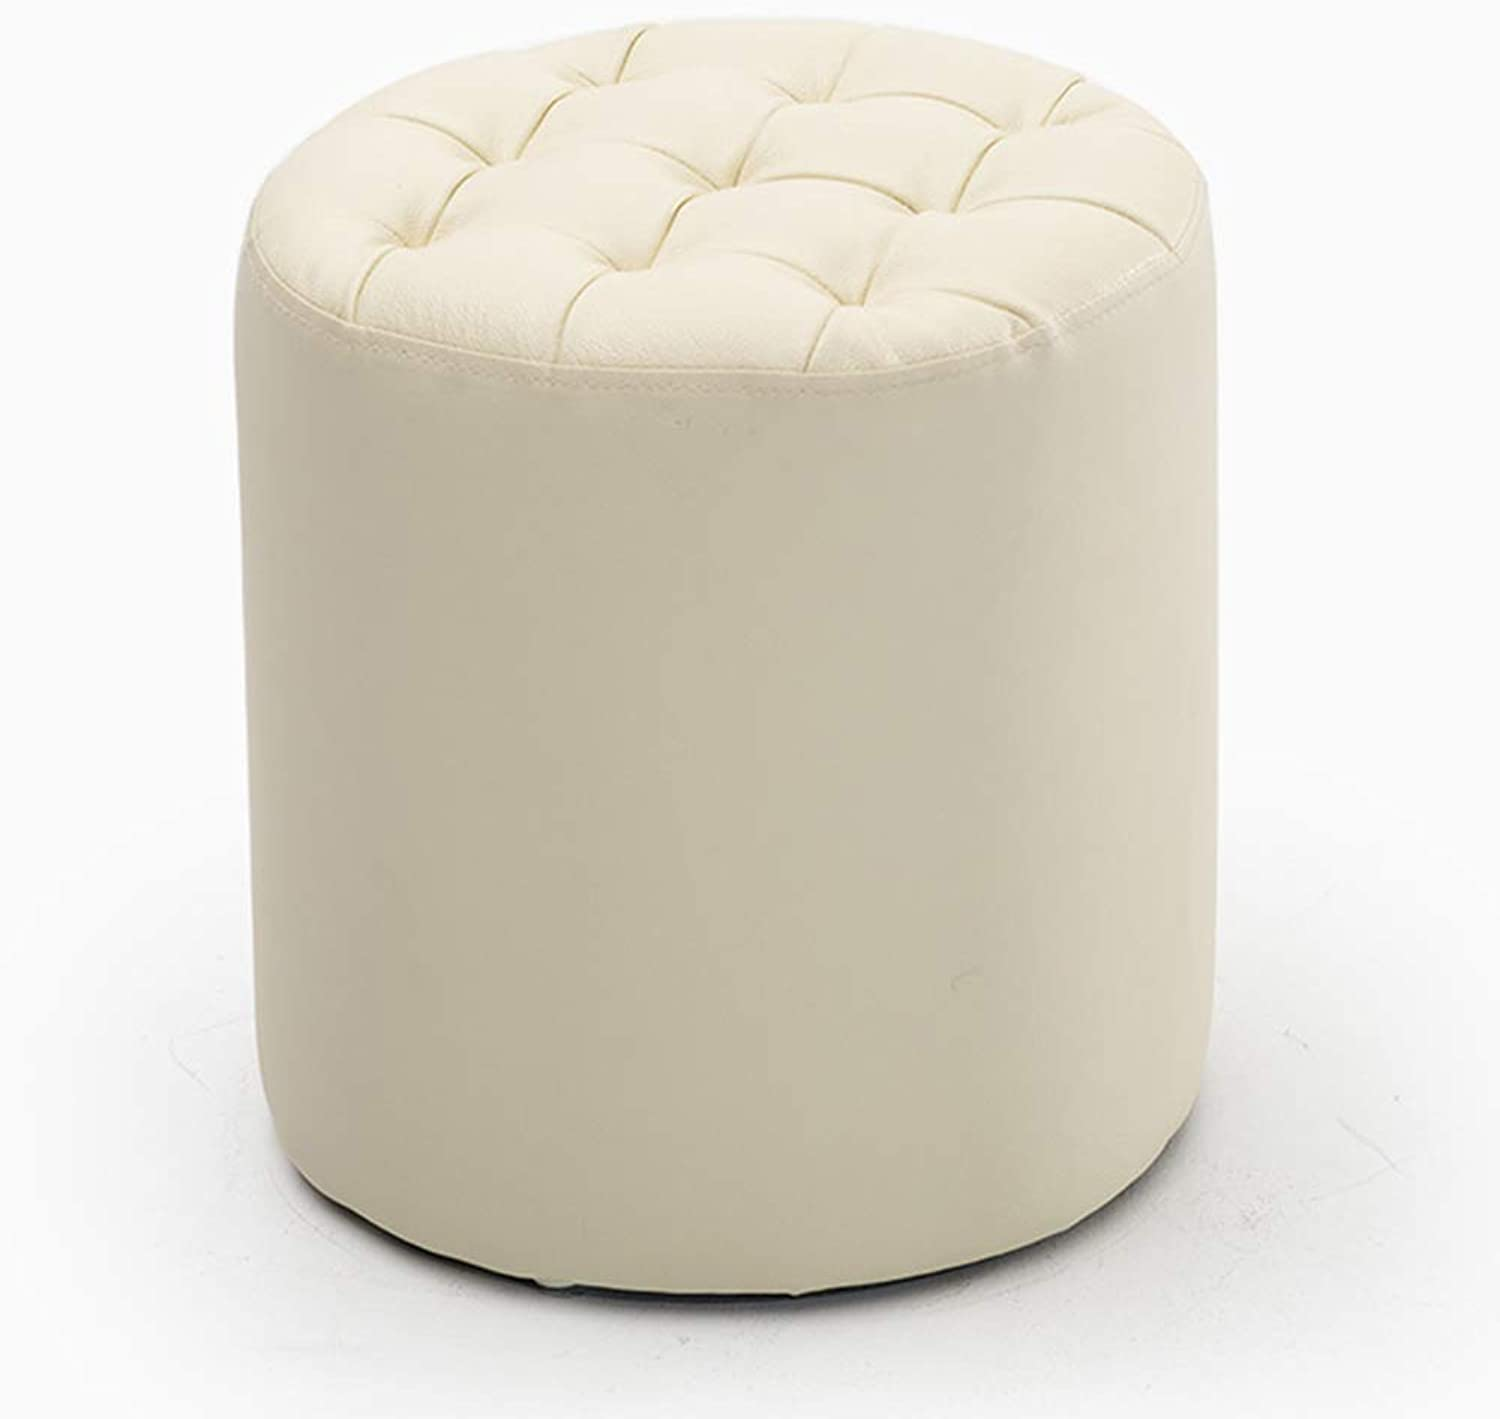 JCOCO Footstool Artificial Leather Home Bedroom Living Room Mobile Anti-Slip stool (color   Milk White, Size   34.5  36cm)